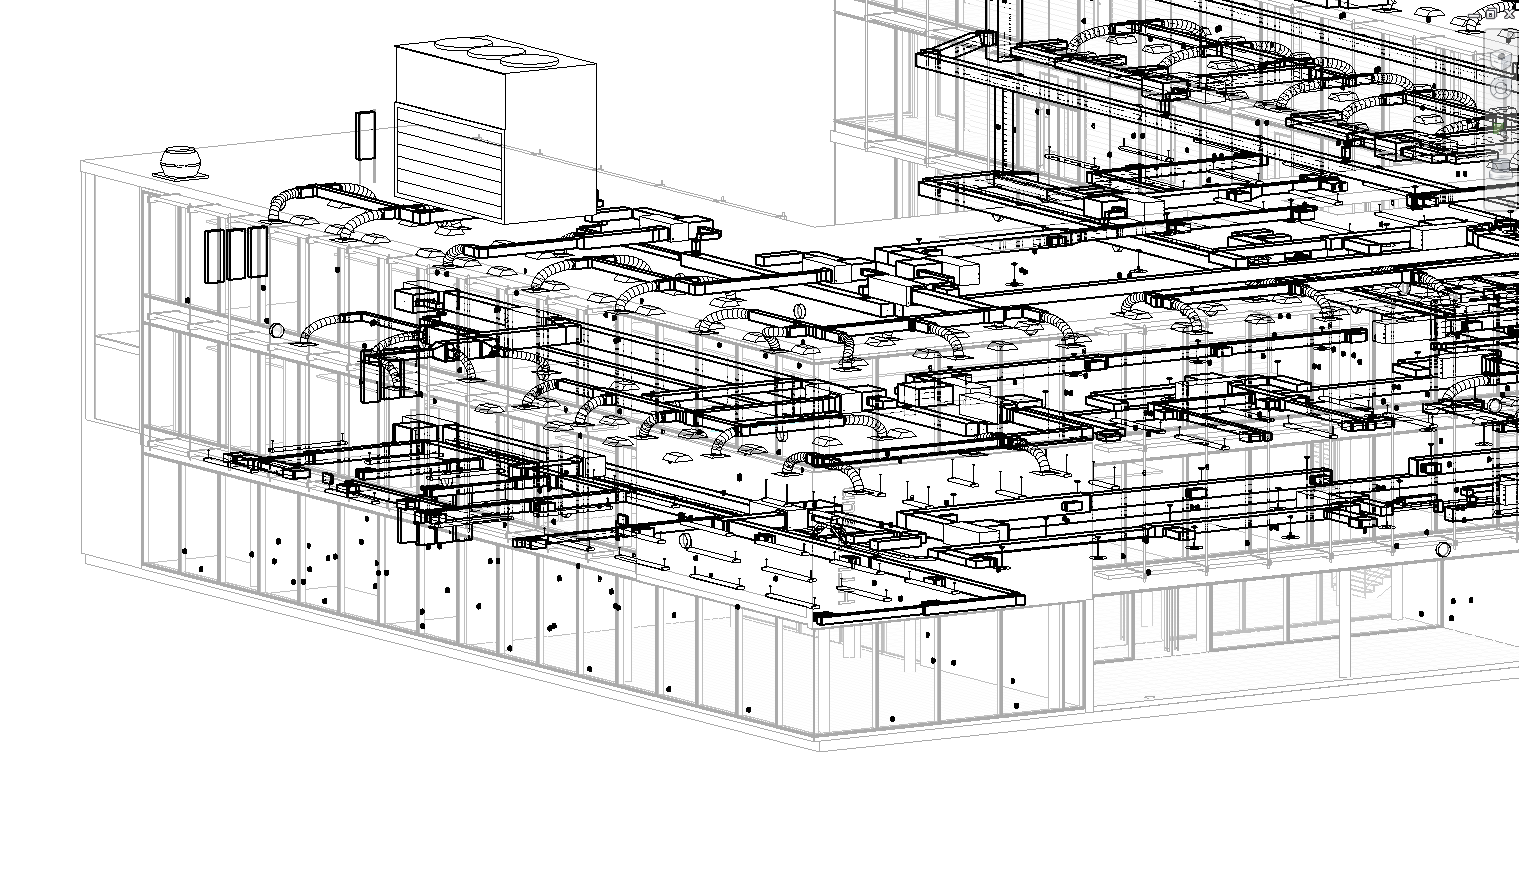 1001 Hvac Layout Setup Process Part 1 Search Autodesk Knowledge Drawing Details Top An Entire Buildings Is Shown Above With Multiple Zones And Units Simulating All Of The Complexities For Building